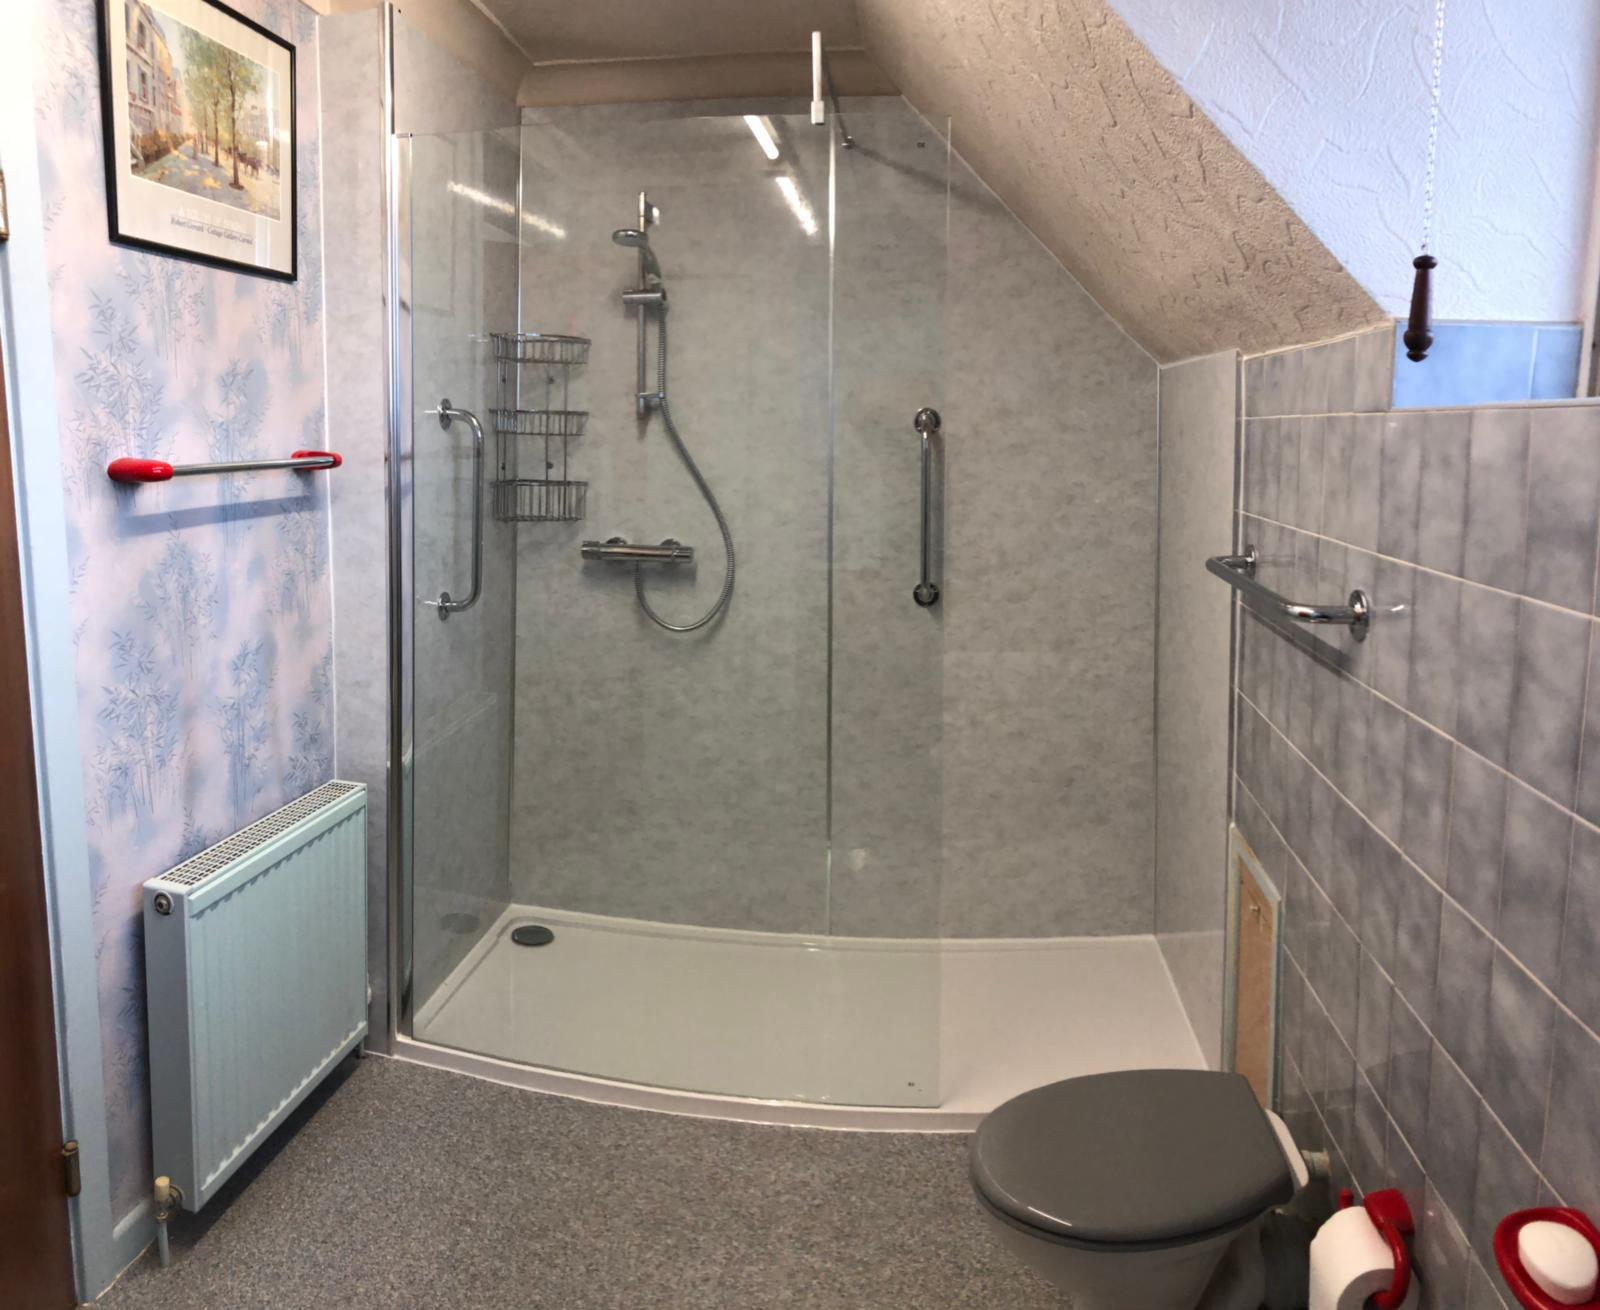 New bathroom installation in Moor Allerton, Leeds with a walk in shower and glass panelling